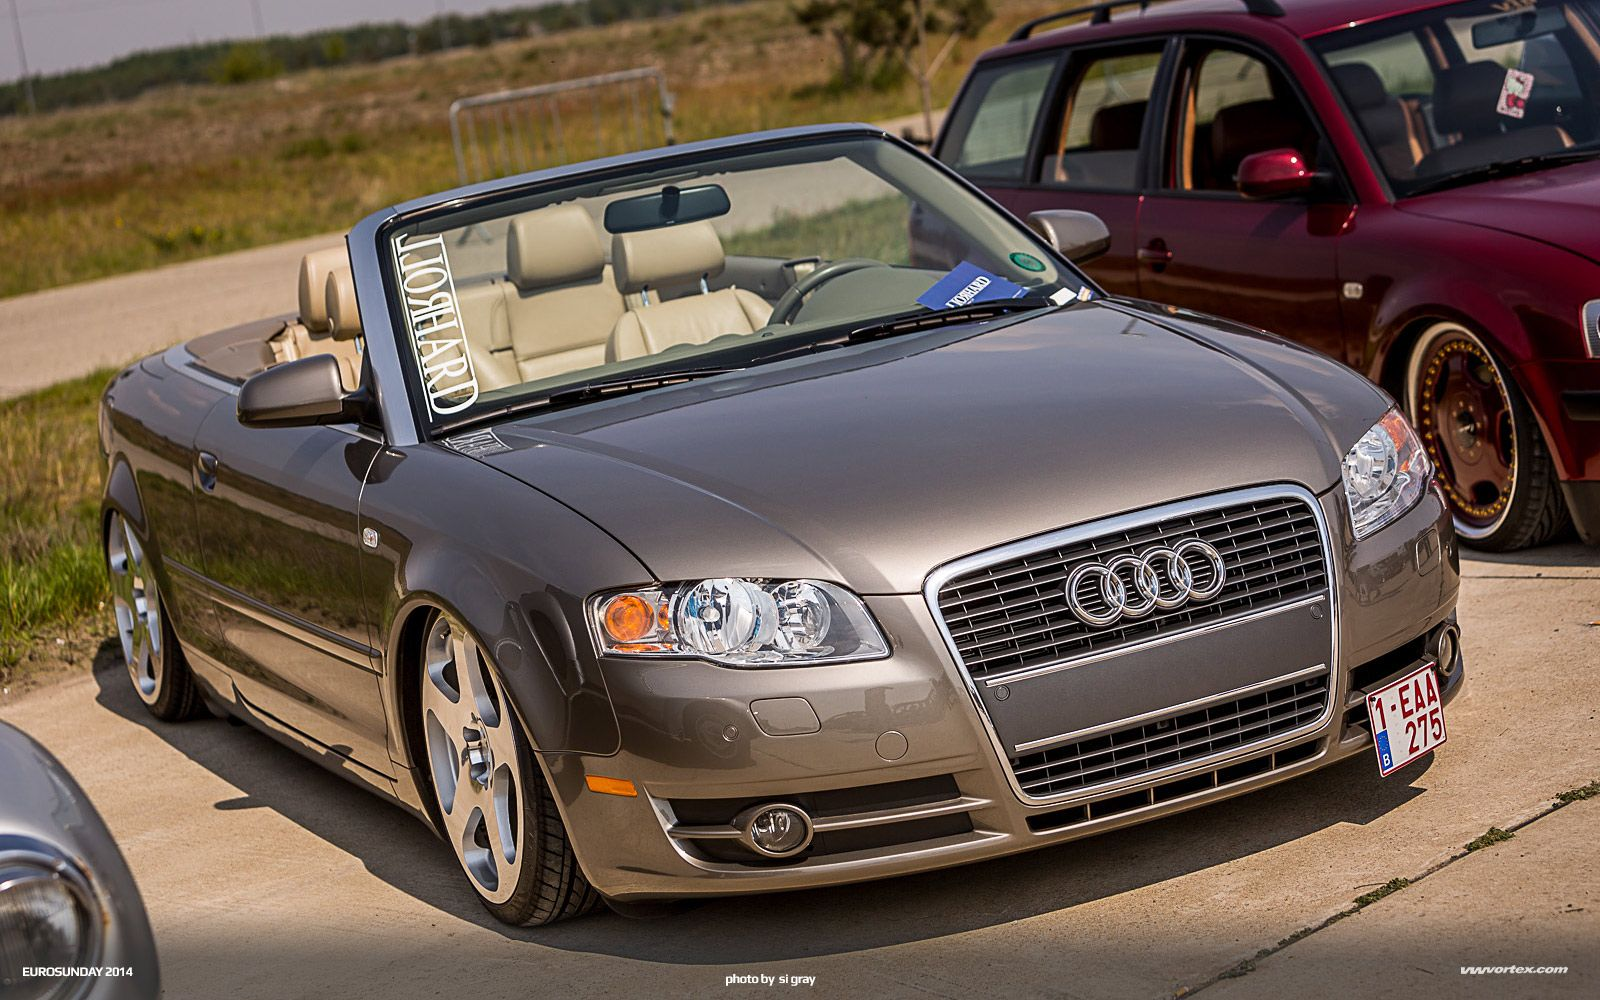 b7 cabrio slightly lowered vehicles audi audi a4 cars. Black Bedroom Furniture Sets. Home Design Ideas